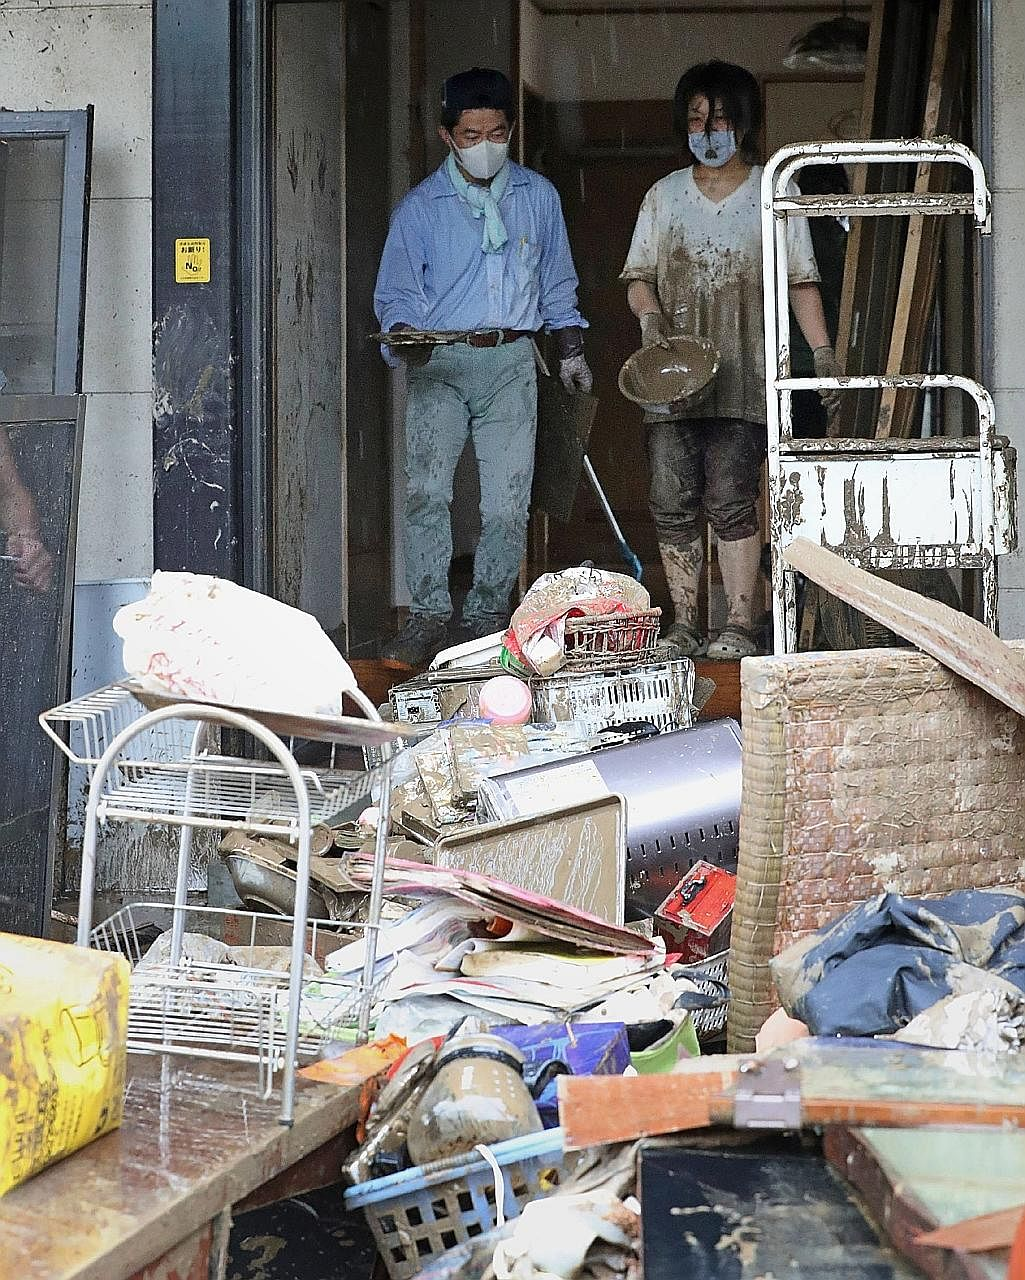 Residents trying to clean up their home damaged by floodwaters due to the torrential rain in Hitoyoshi yesterday. Communities along the Kuma River, which passes through Hitoyoshi, have been hit hard by flooding and over 200,000 people have been urged